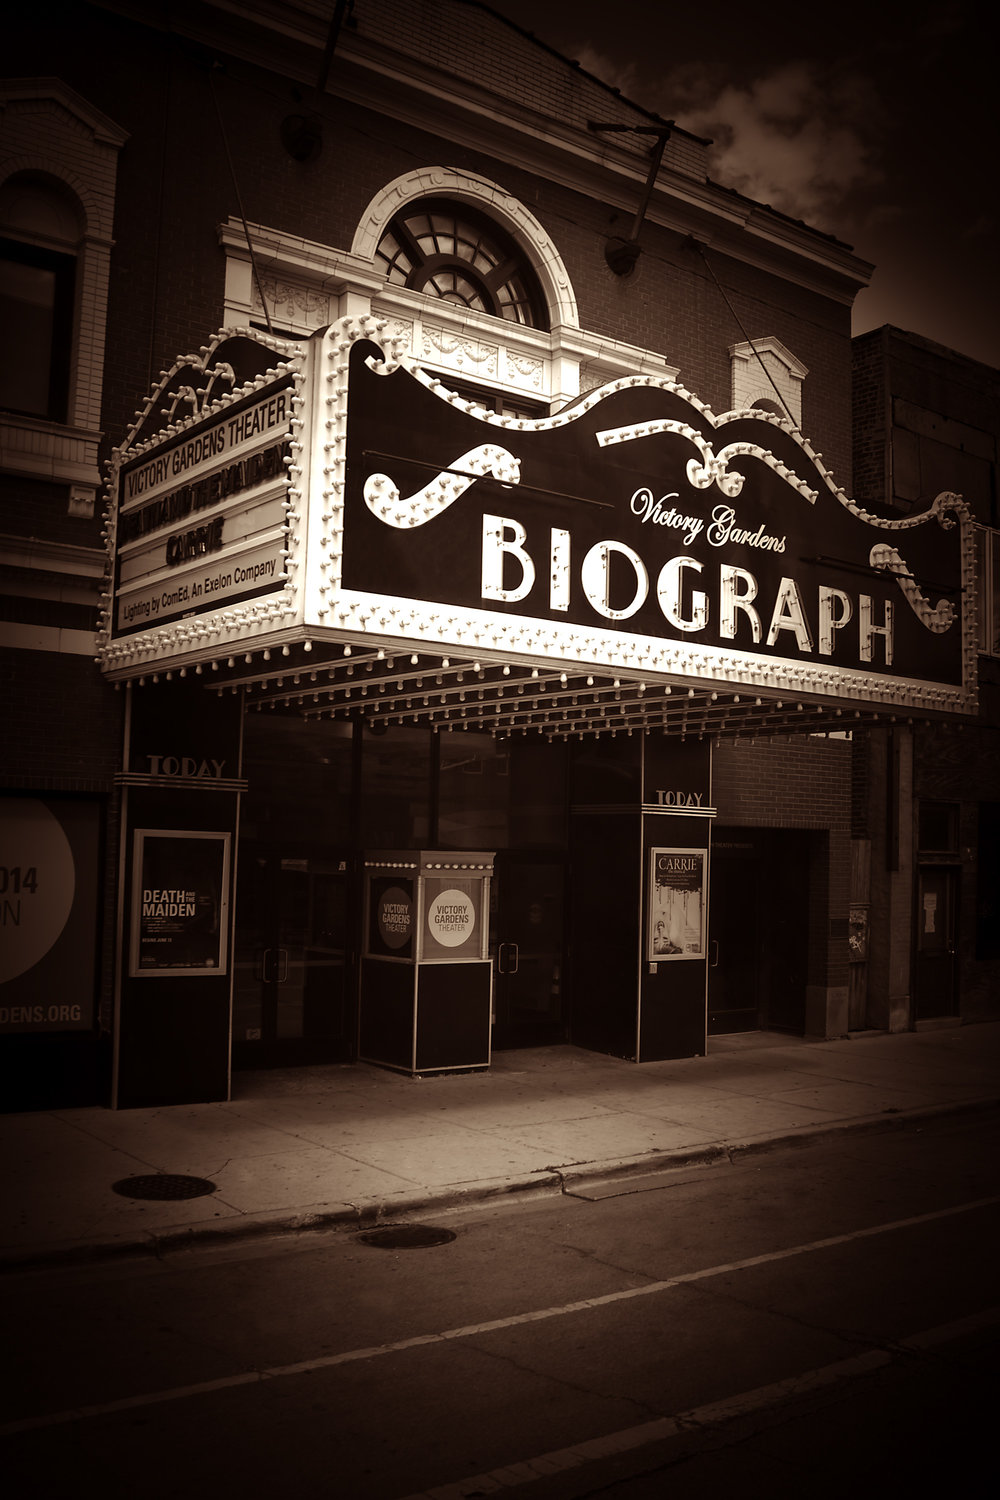 Biograph Theater in Chicago, IL   #publicenemynumberone1934